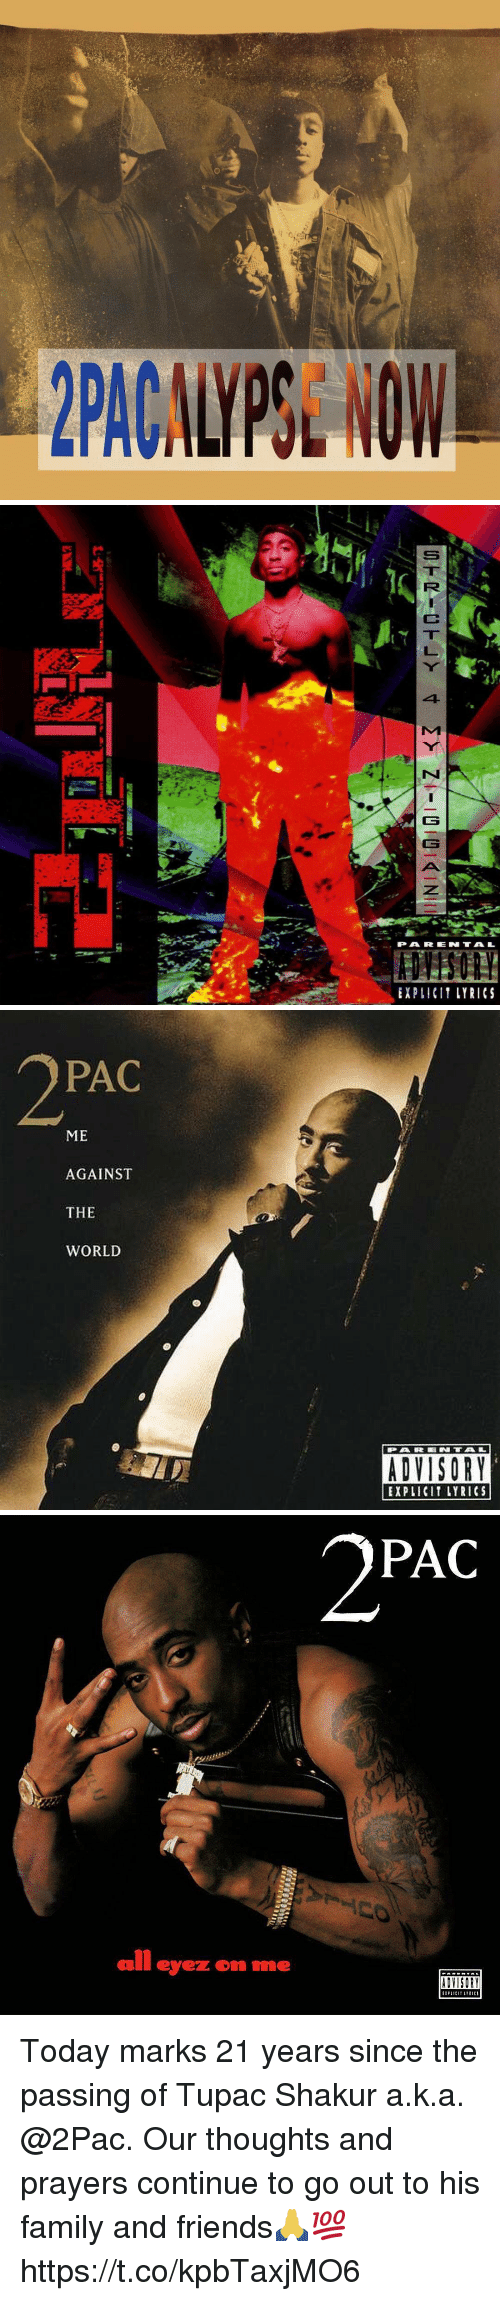 41 PARE N TAL EXPLICI LYRICS PAC ME AGAINST THE WORLD